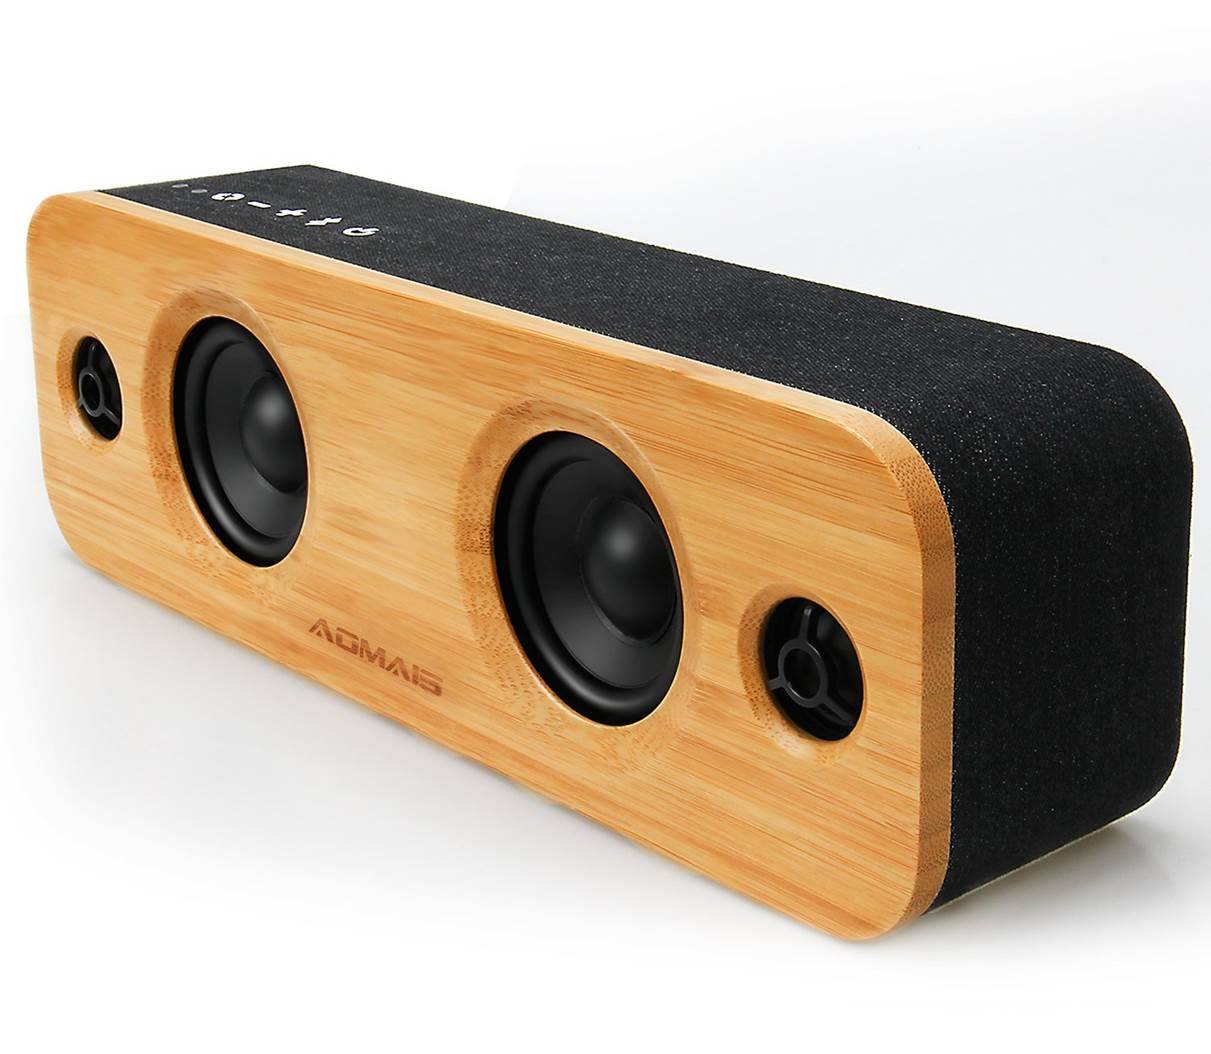 AOMAIS LIFE 30W Home Bluetooth Speaker